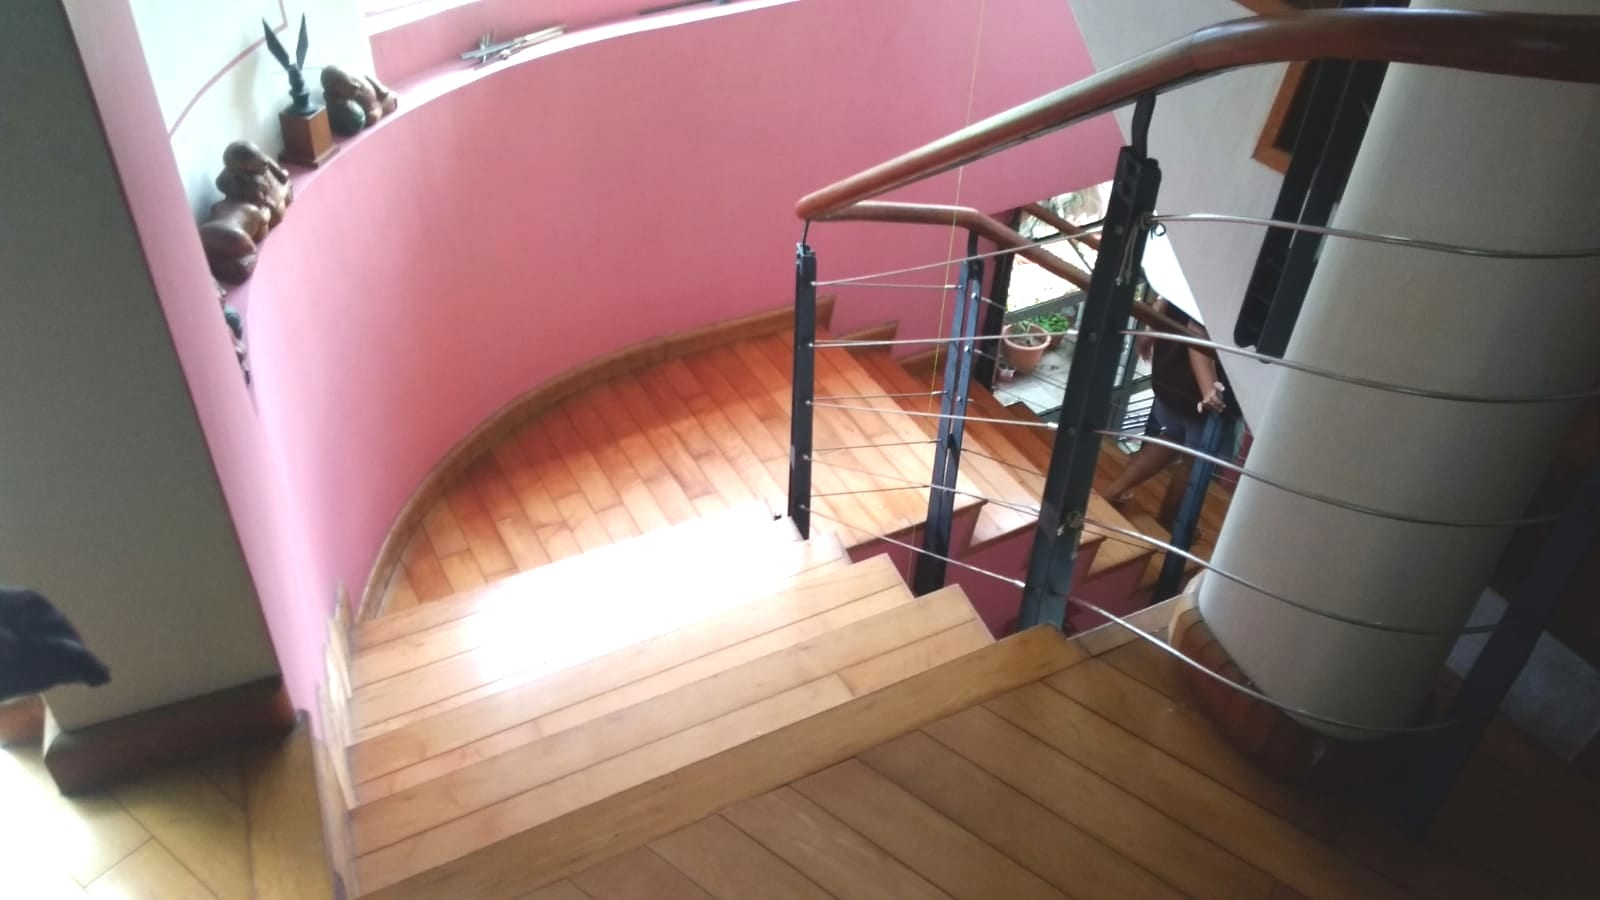 round and narrow staircase needs more manpower to lift the massage chair and manoeuvre without damaging the walls